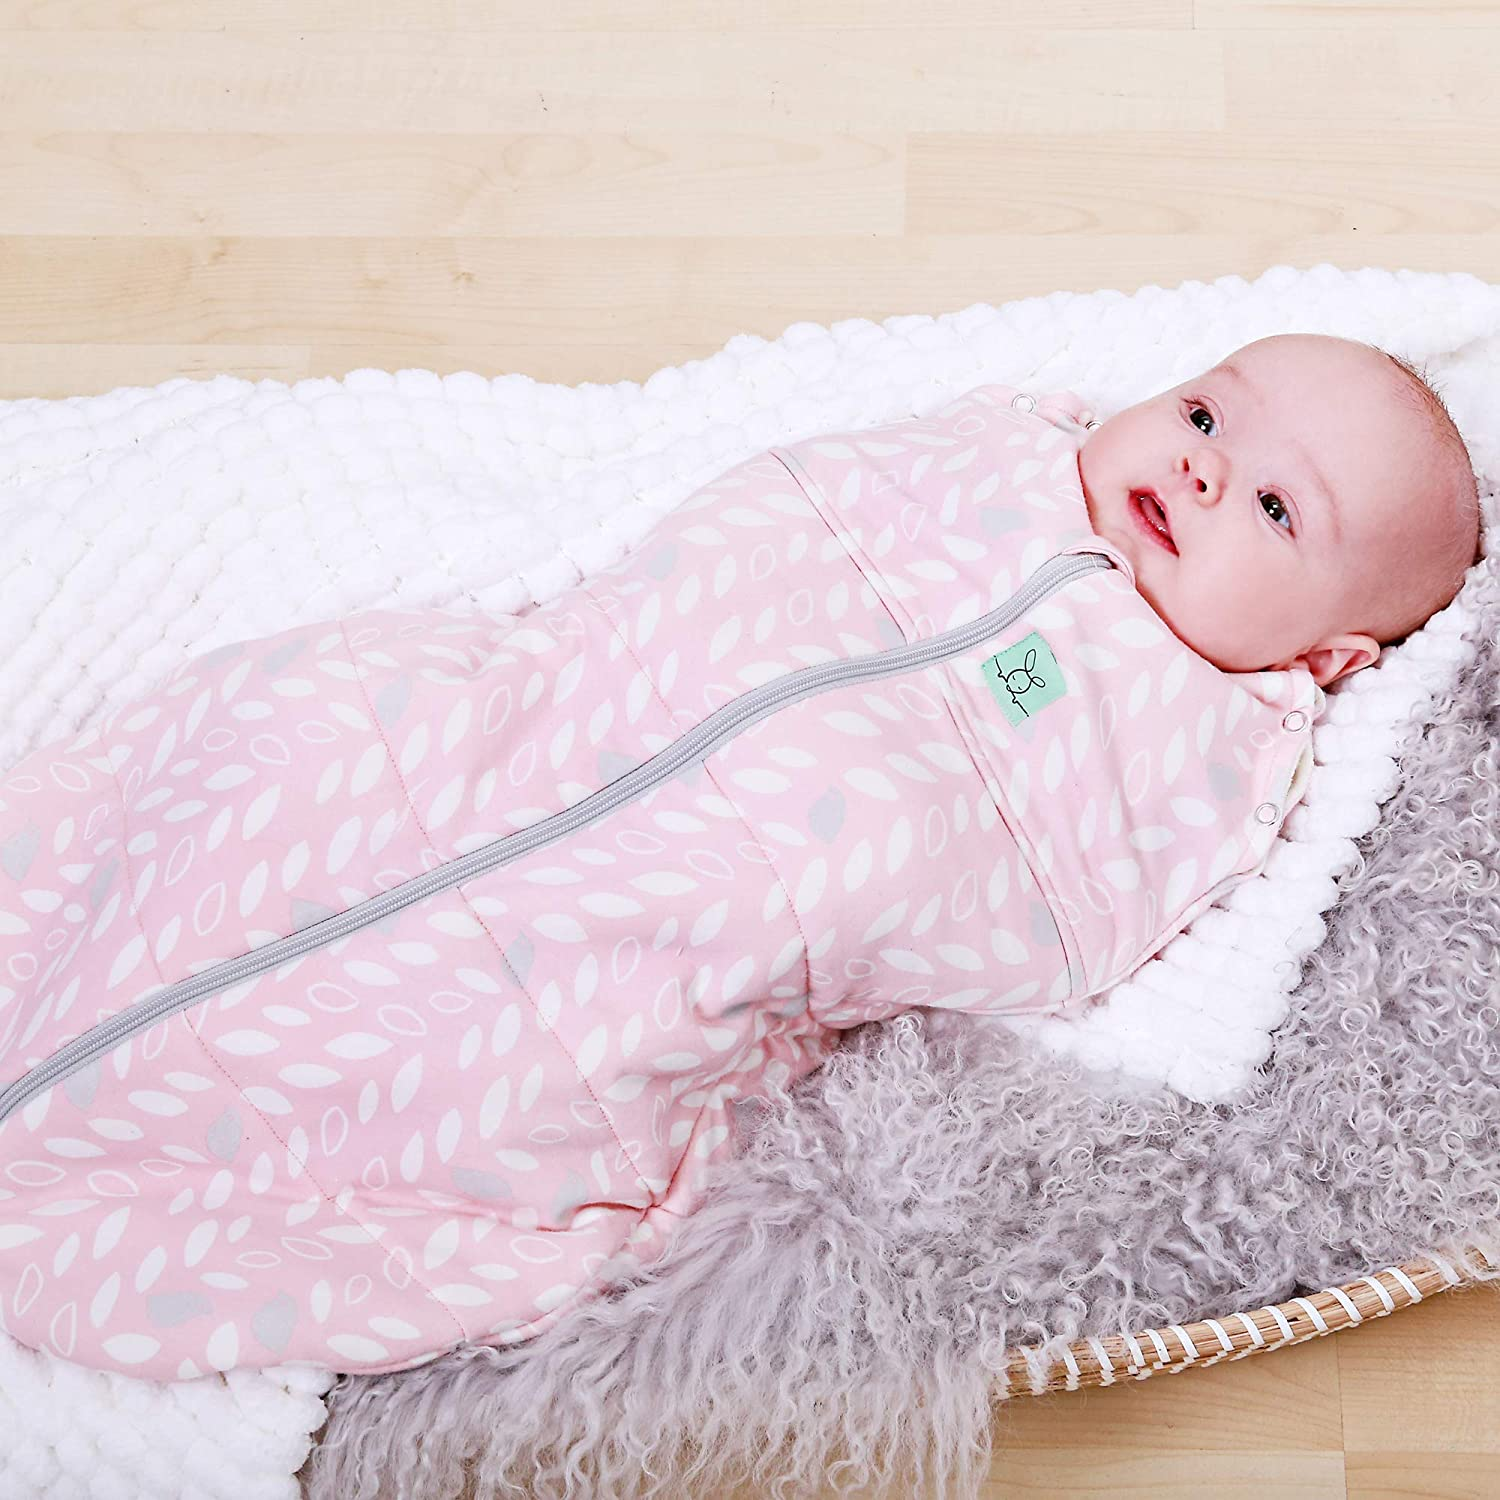 2 Way Zipper for Easy Diaper Changes Spring Leaves, 2.5 Tog 3-12M 2 in 1 Swaddle Transitions into arms Free Wearable Blanket Sleeping Bag ergoPouch tog Cocoon Swaddle Bag